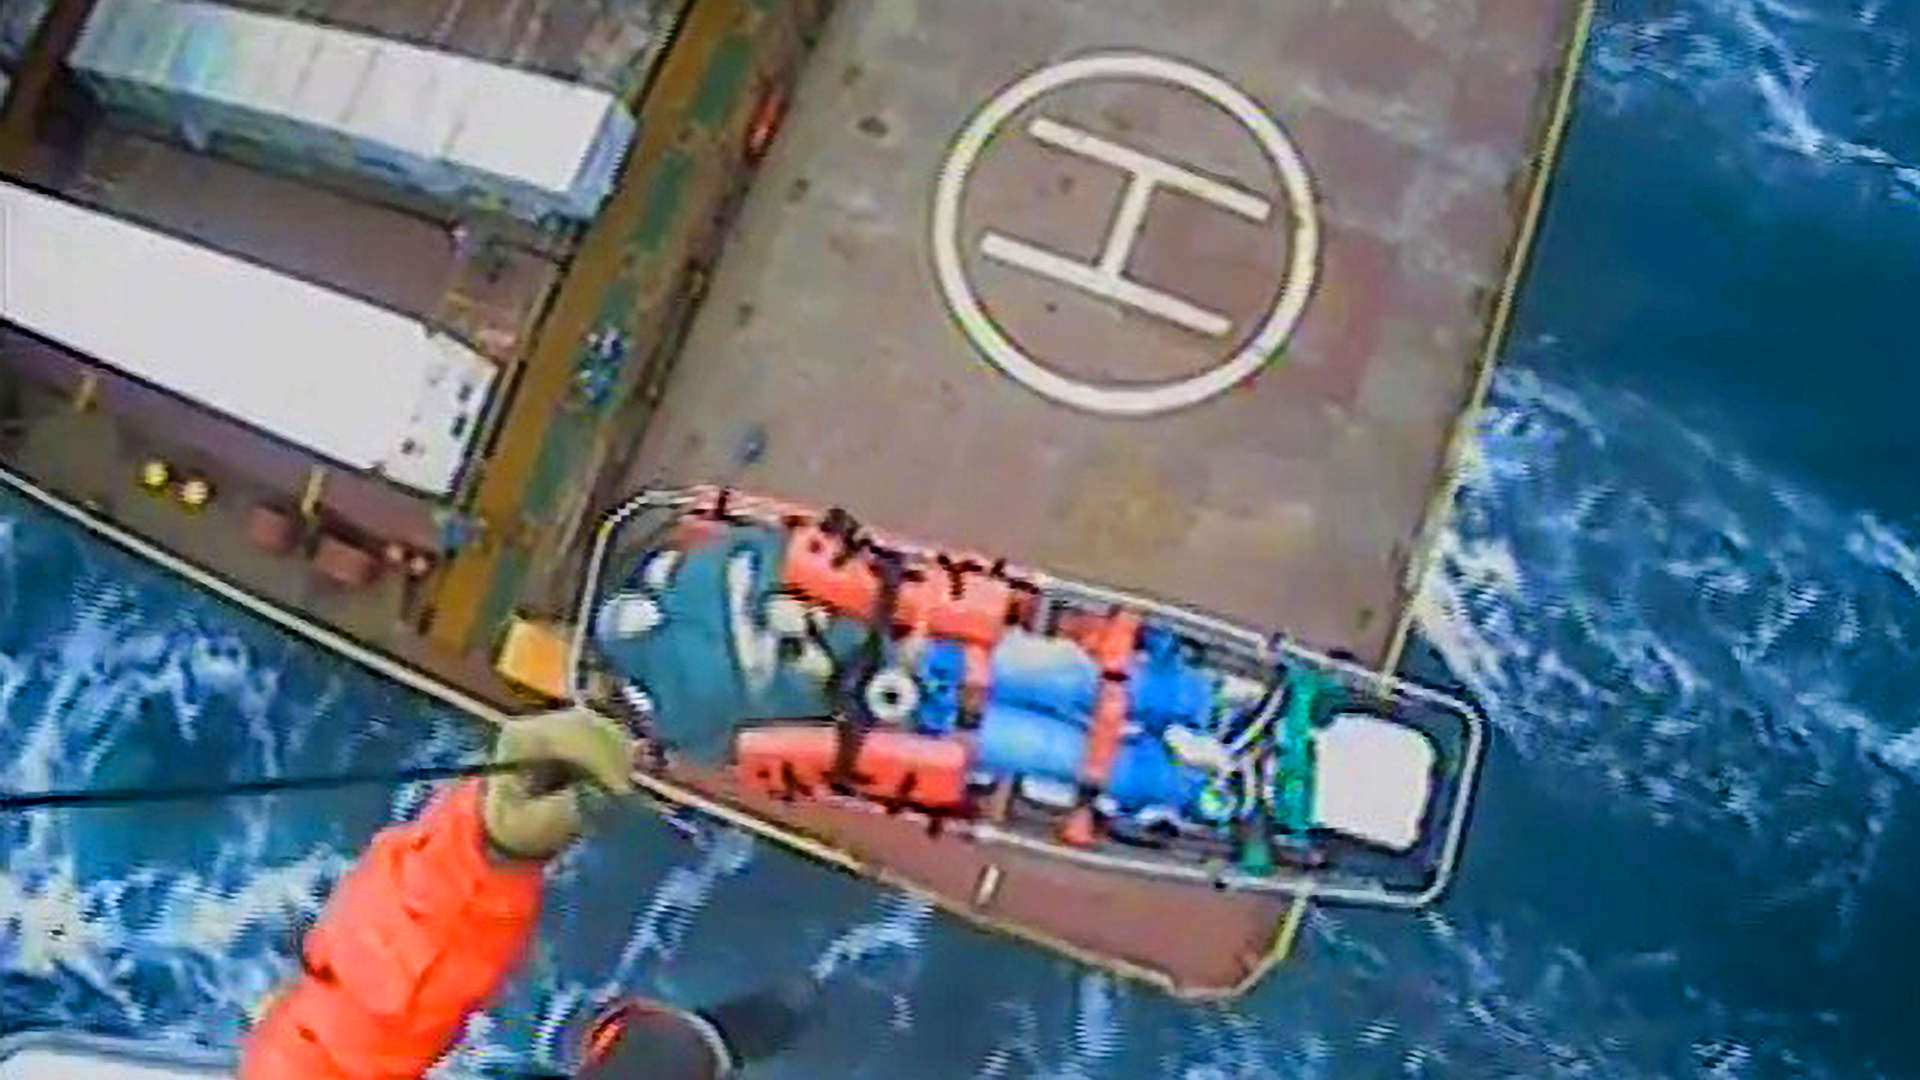 65-year-old woman rescued by US Coast Guard from a container near US-Canada border